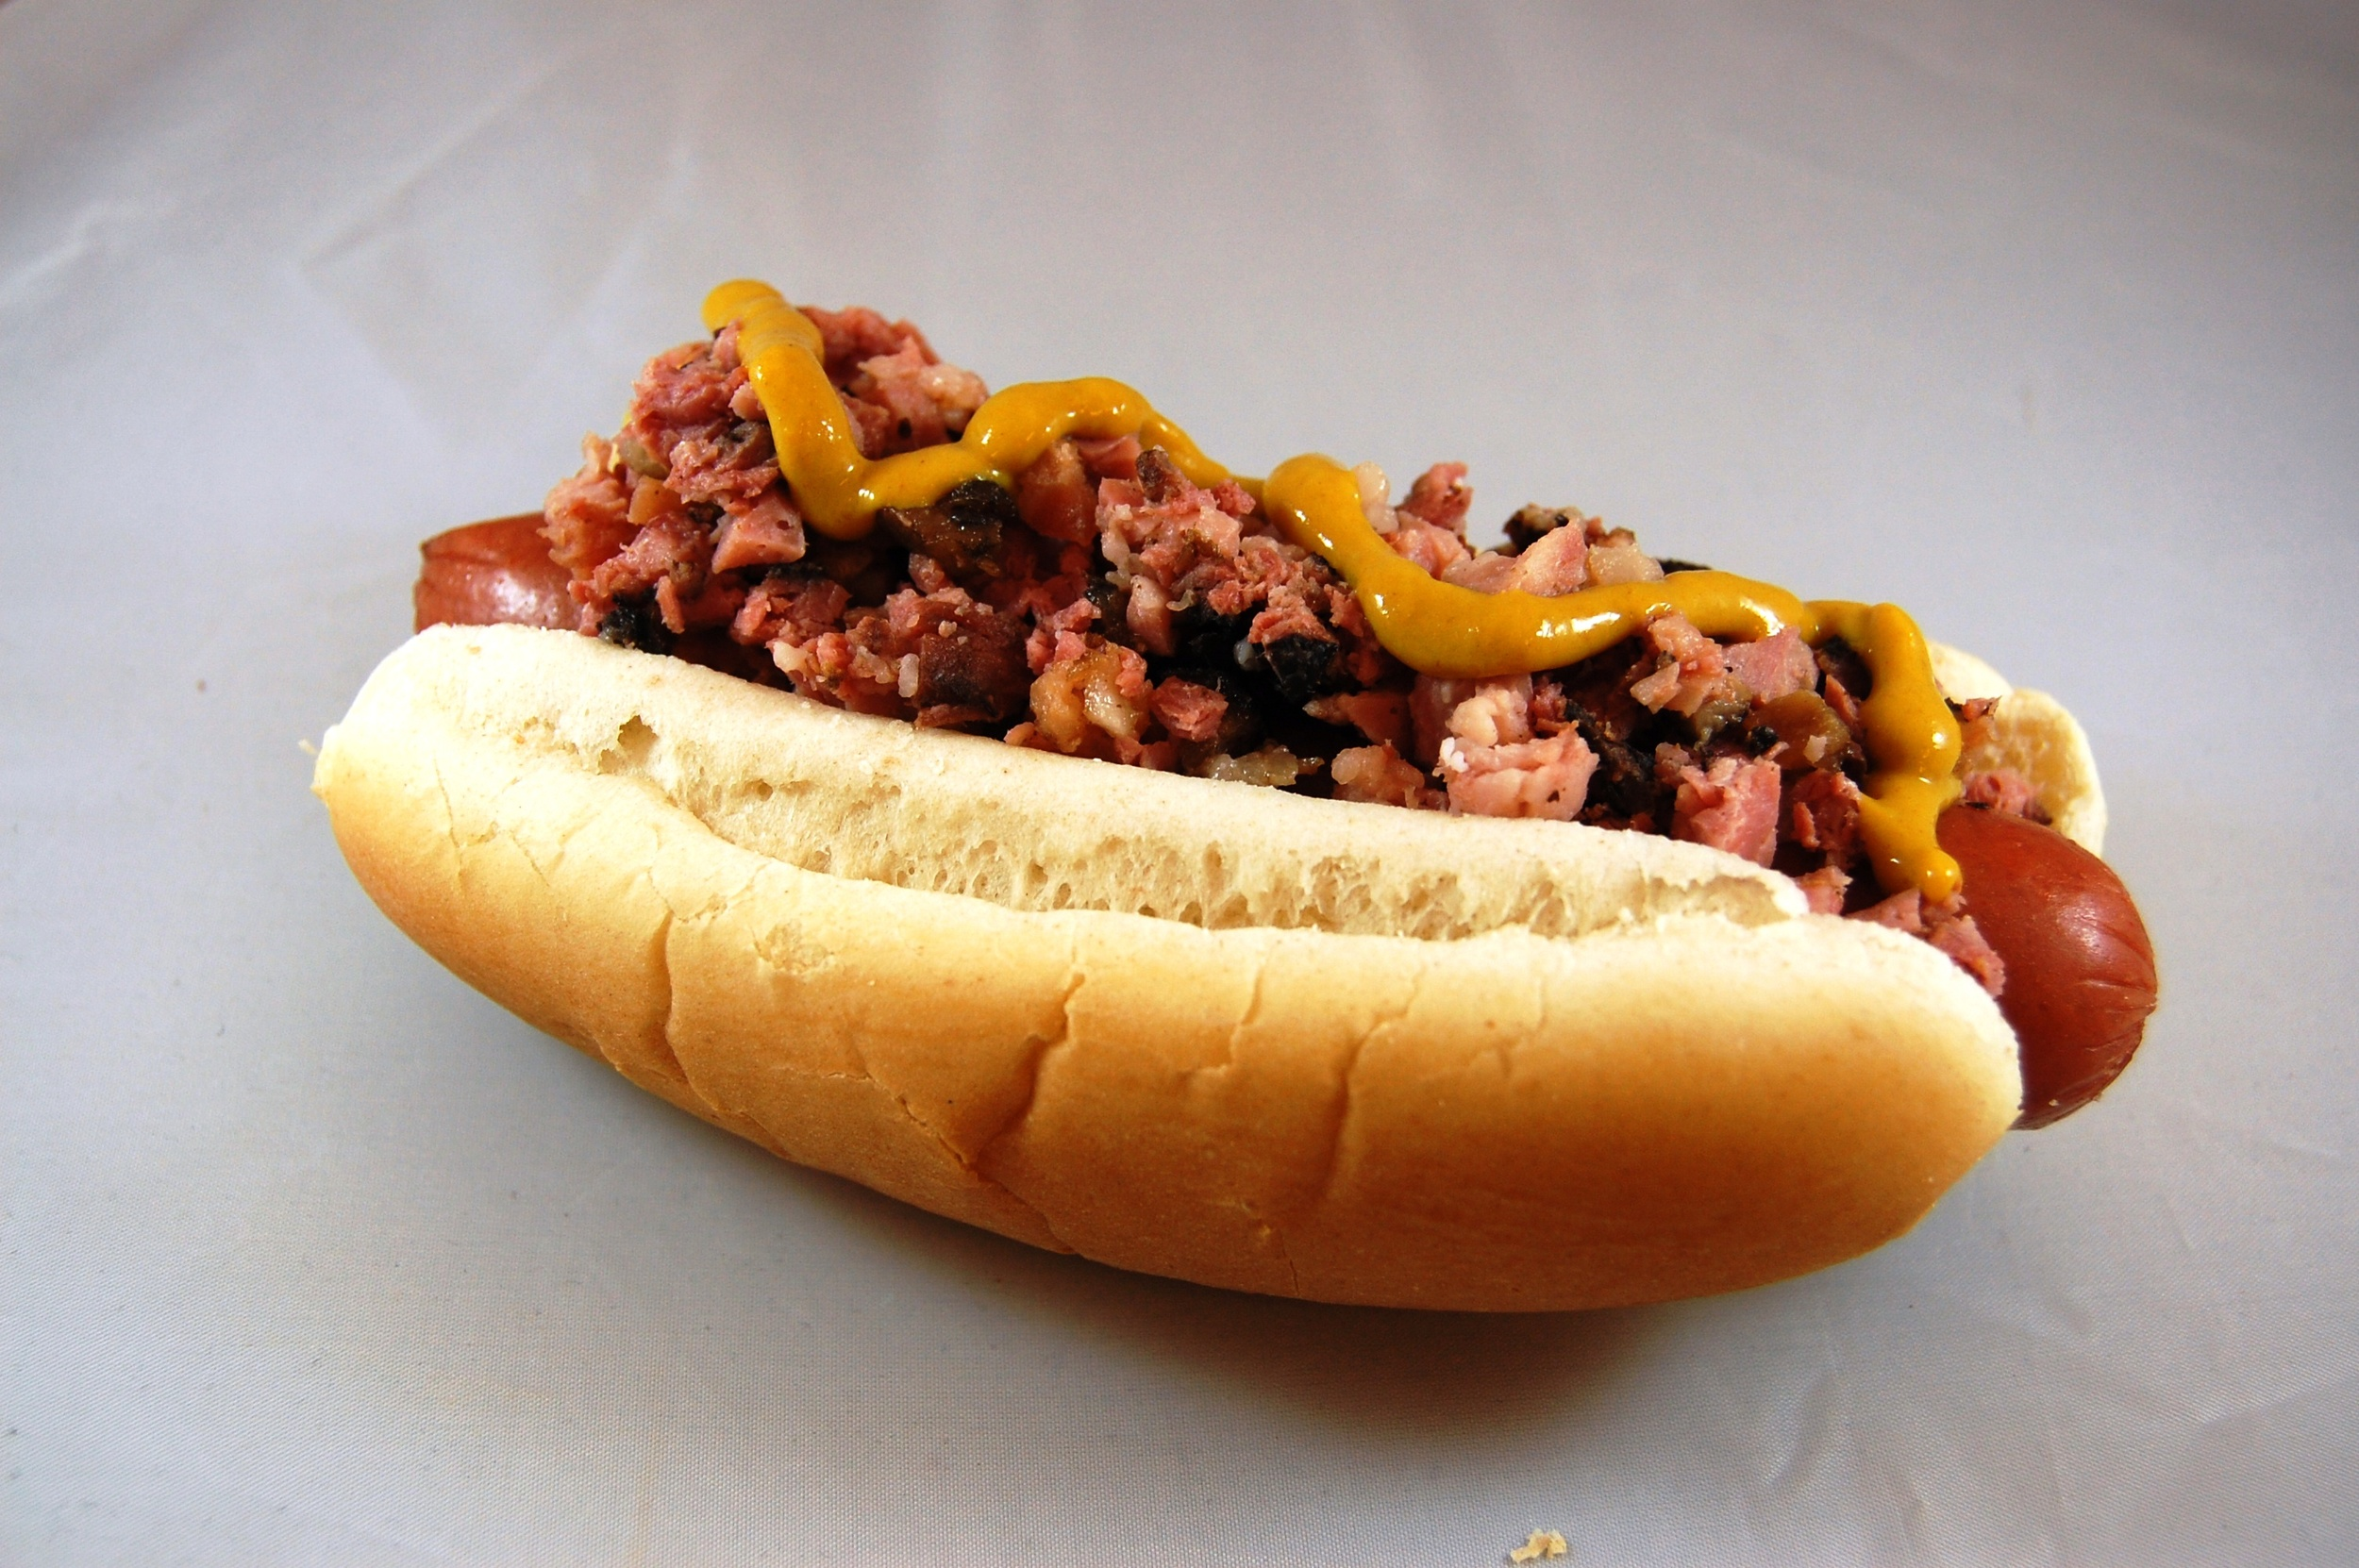 Pastrami hot dog available at Citi Field